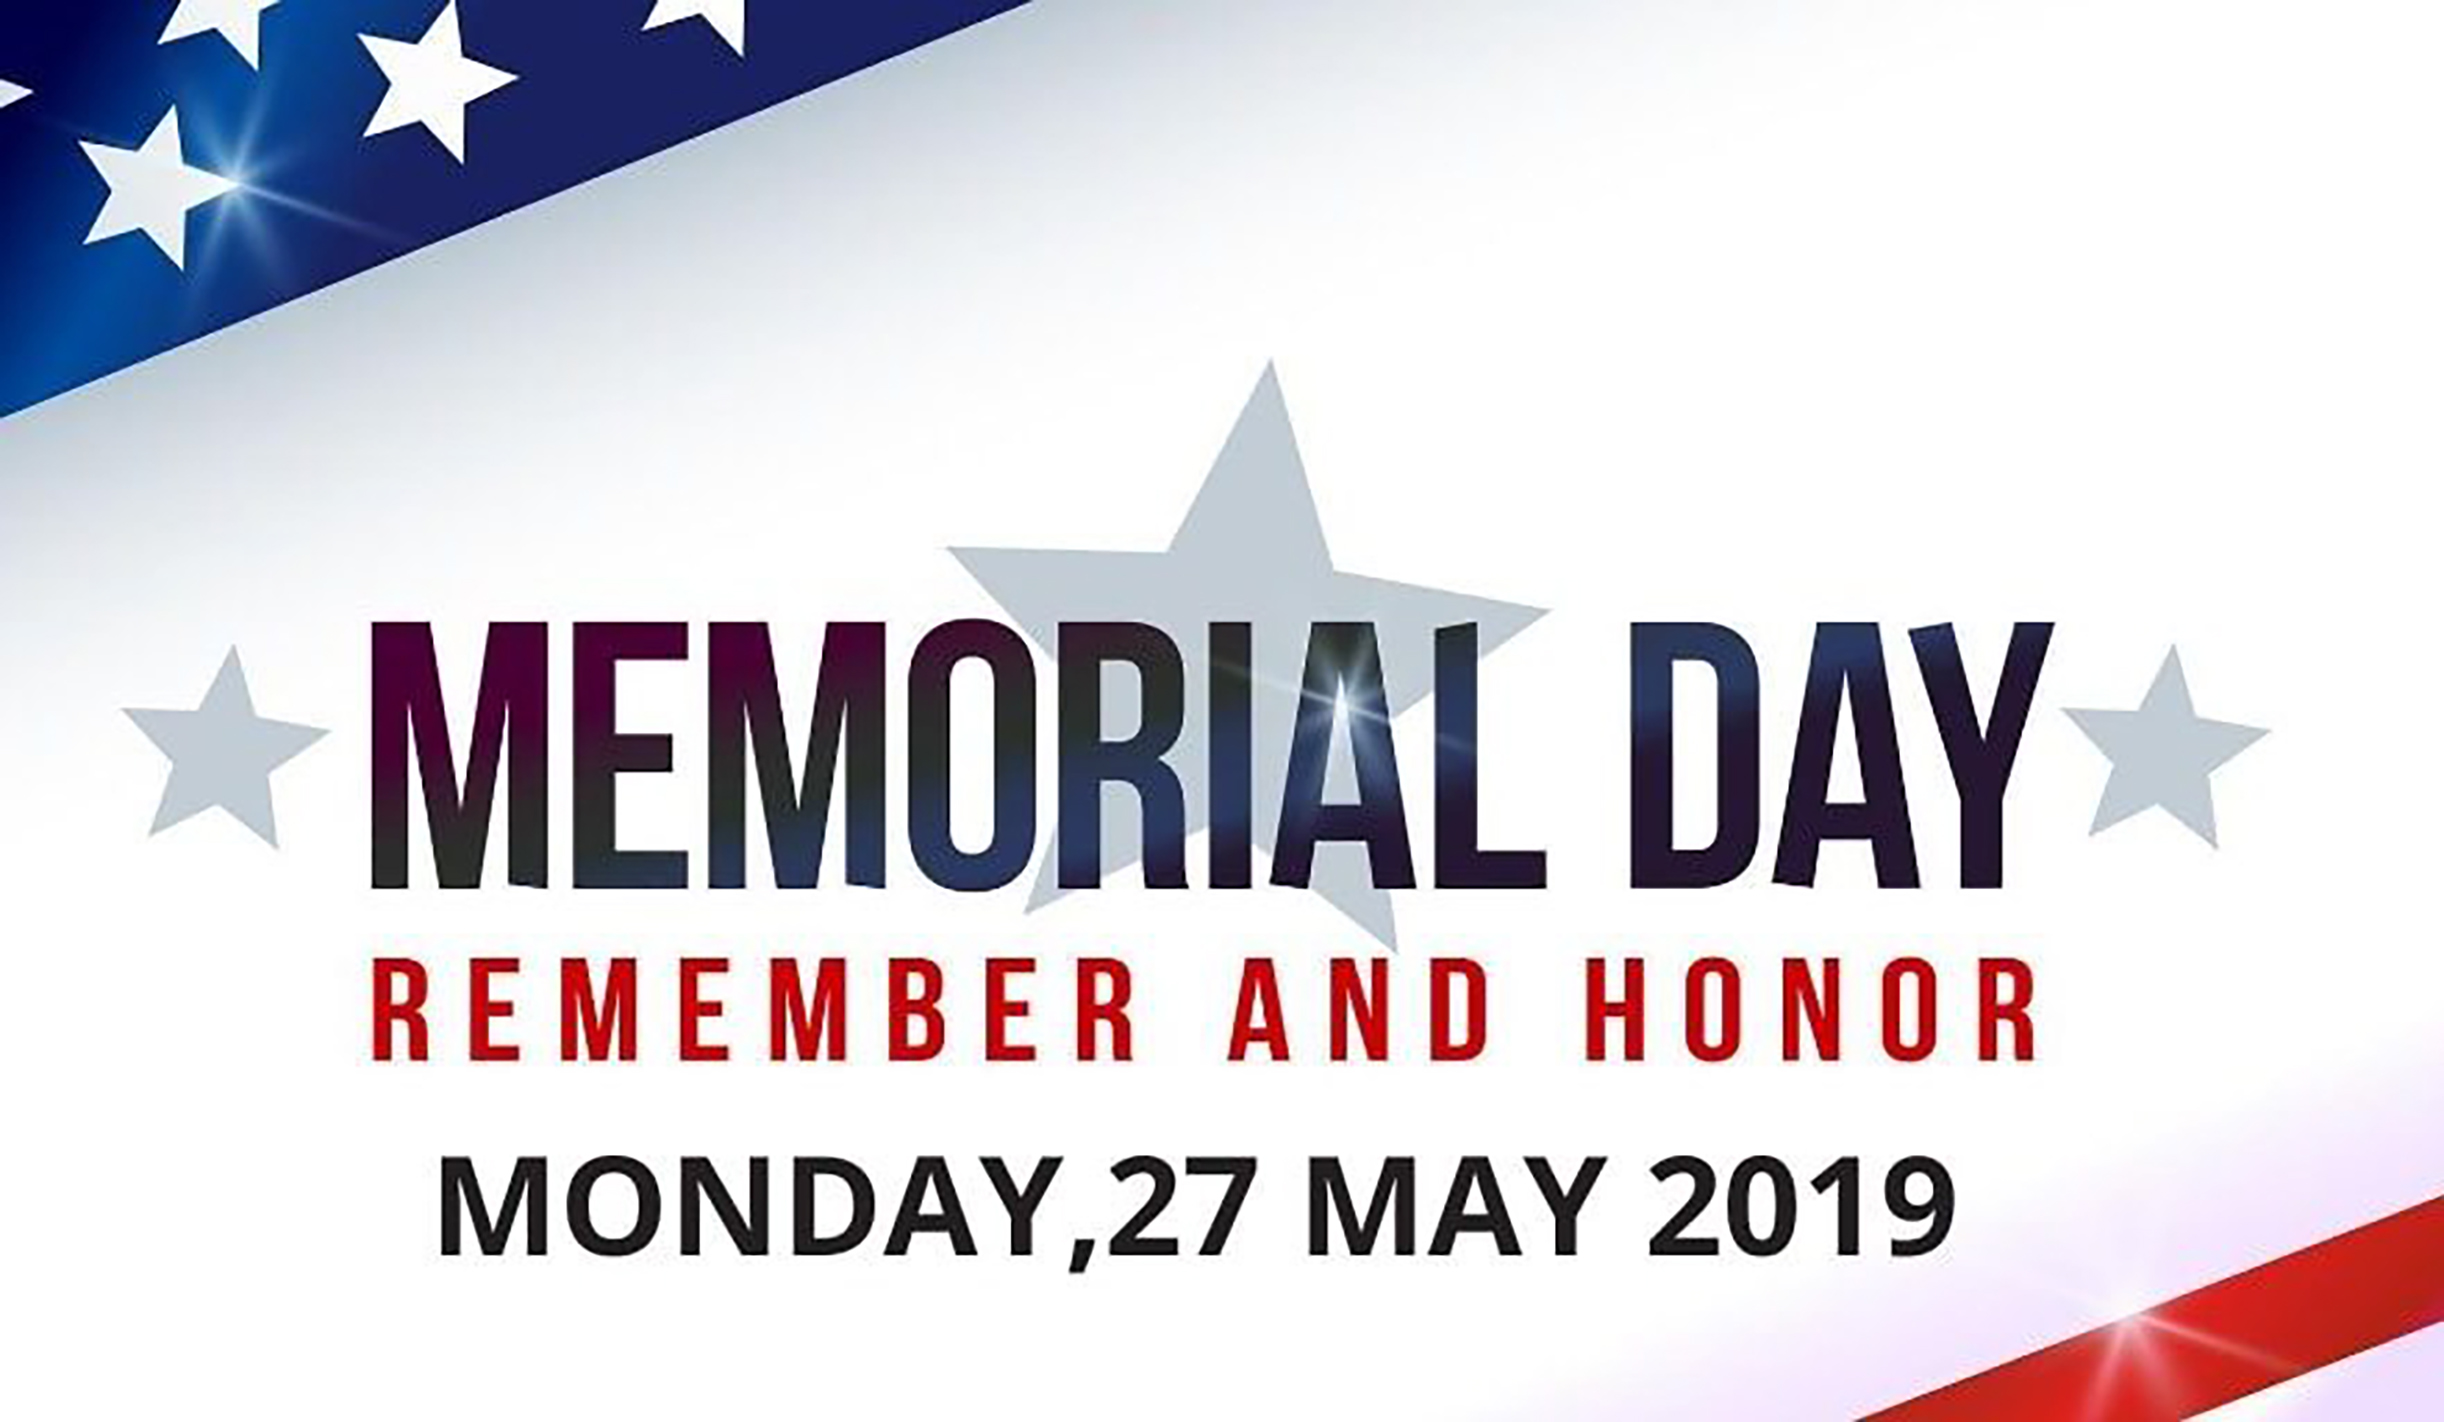 Happy-Memorial-day-2019-880x512.jpg